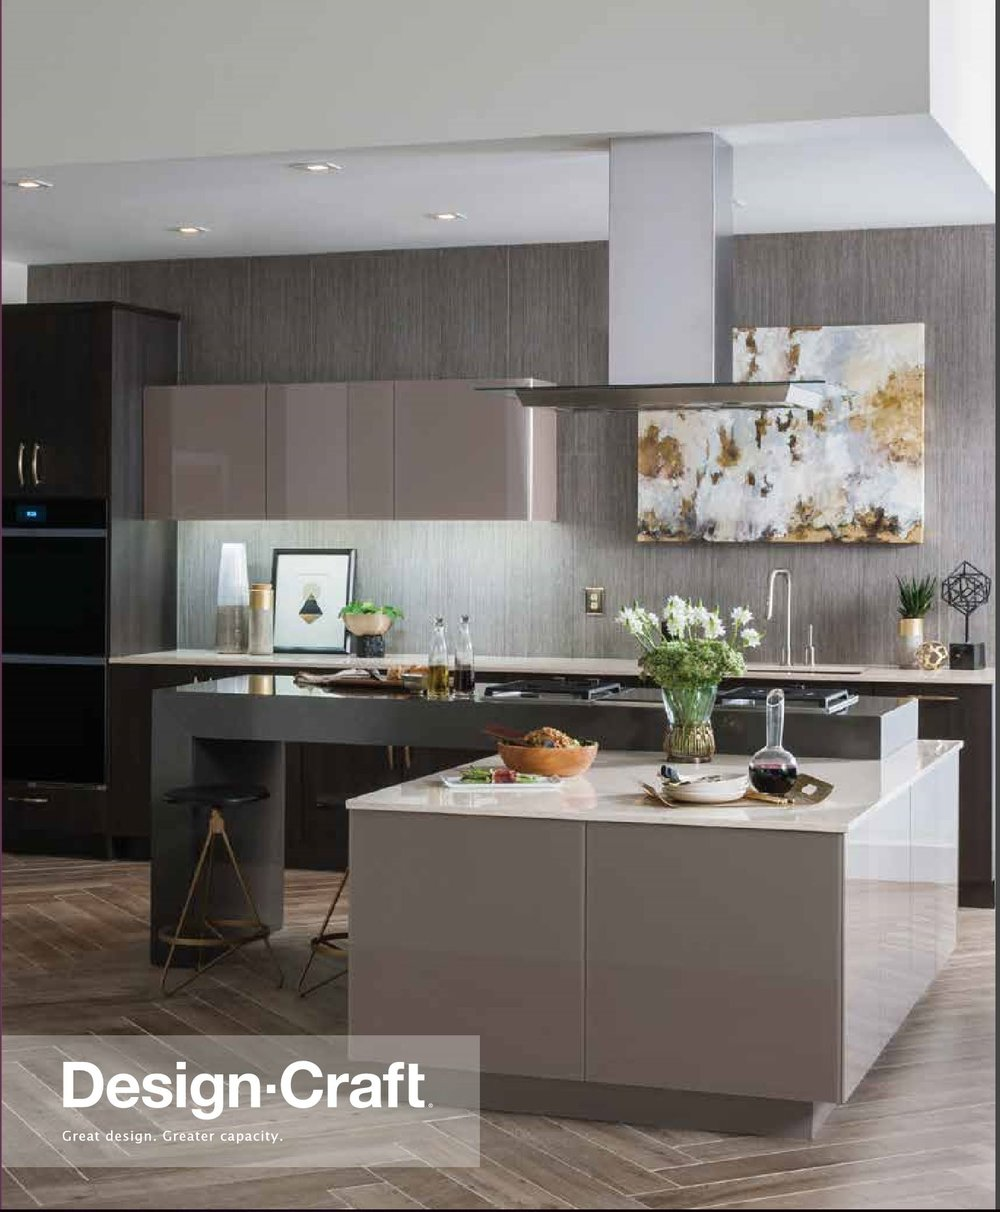 Click To See The Design Craft Catalog